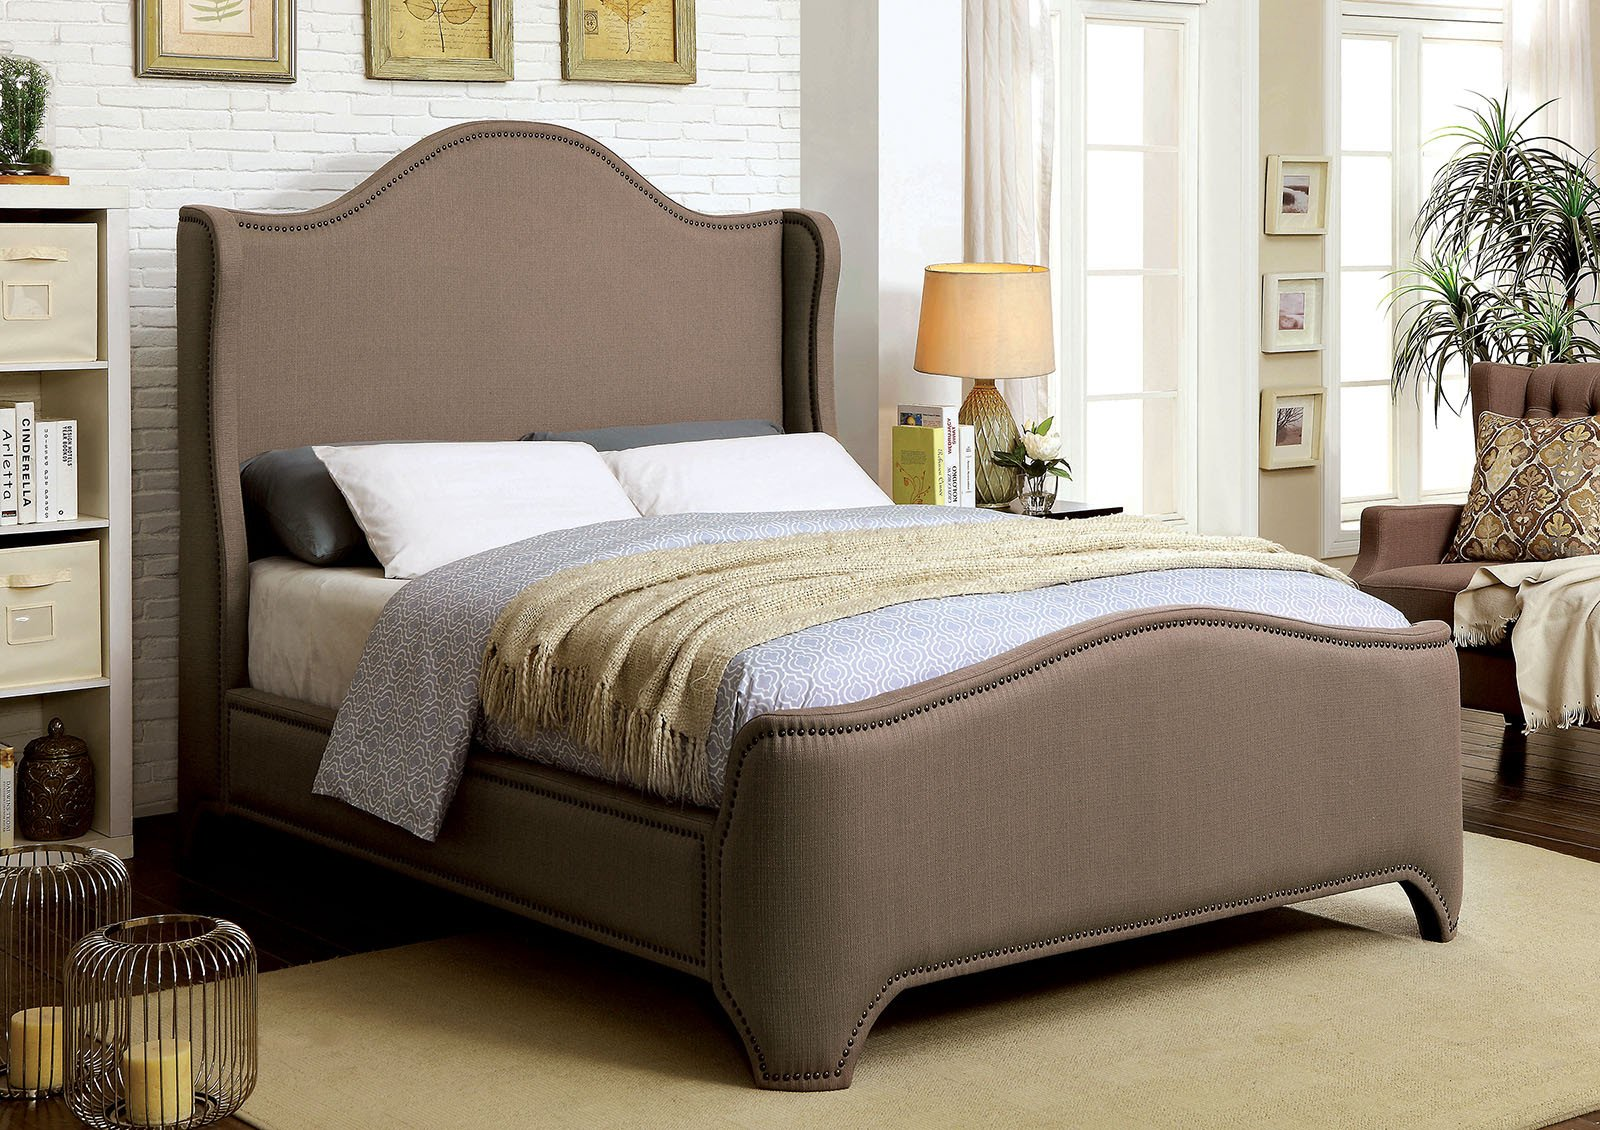 King Size Bedroom Suites Beautiful Bedroom Bed Contemporary Eastern King Size Bed Brown Padded Fabric Plush fort Relax Wingback Design